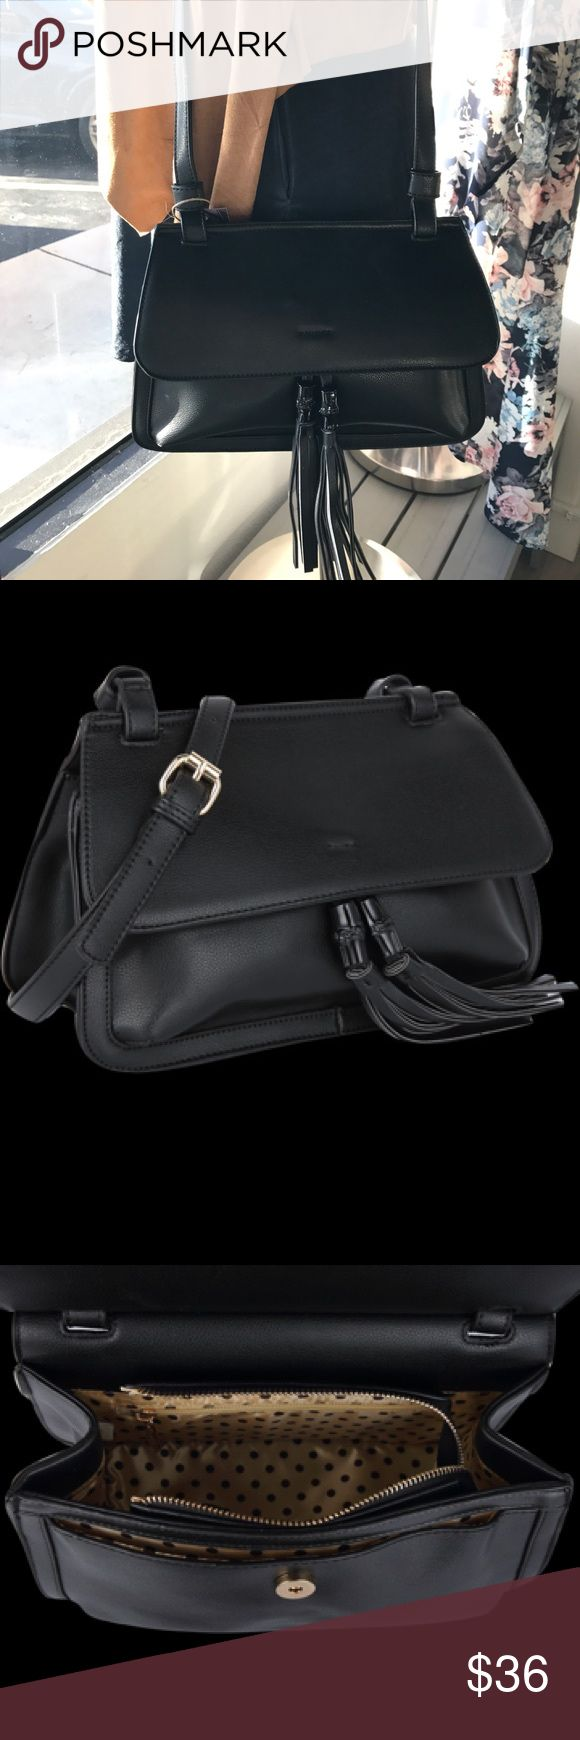 Estelle Purse This black with tassels luxury vegan handbag with adjustable strap is by Melie Bianco and features a gold and brown polka dot satin lining, front pocket and zipper closure. Melie Bianco Bags Shoulder Bags